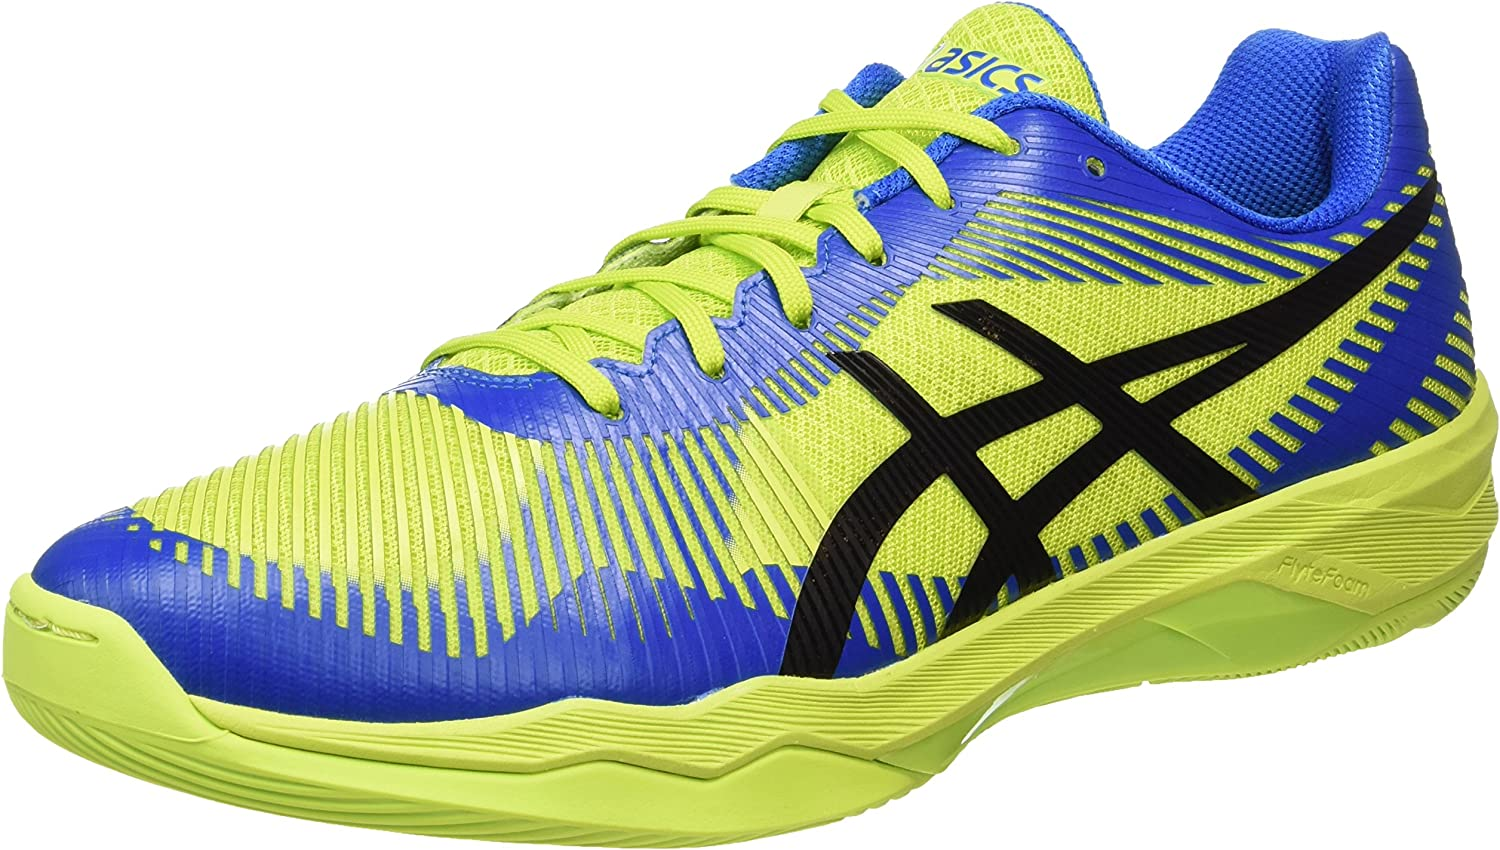 ASICS Herren Volley Elite Ff Volleyballschuhe